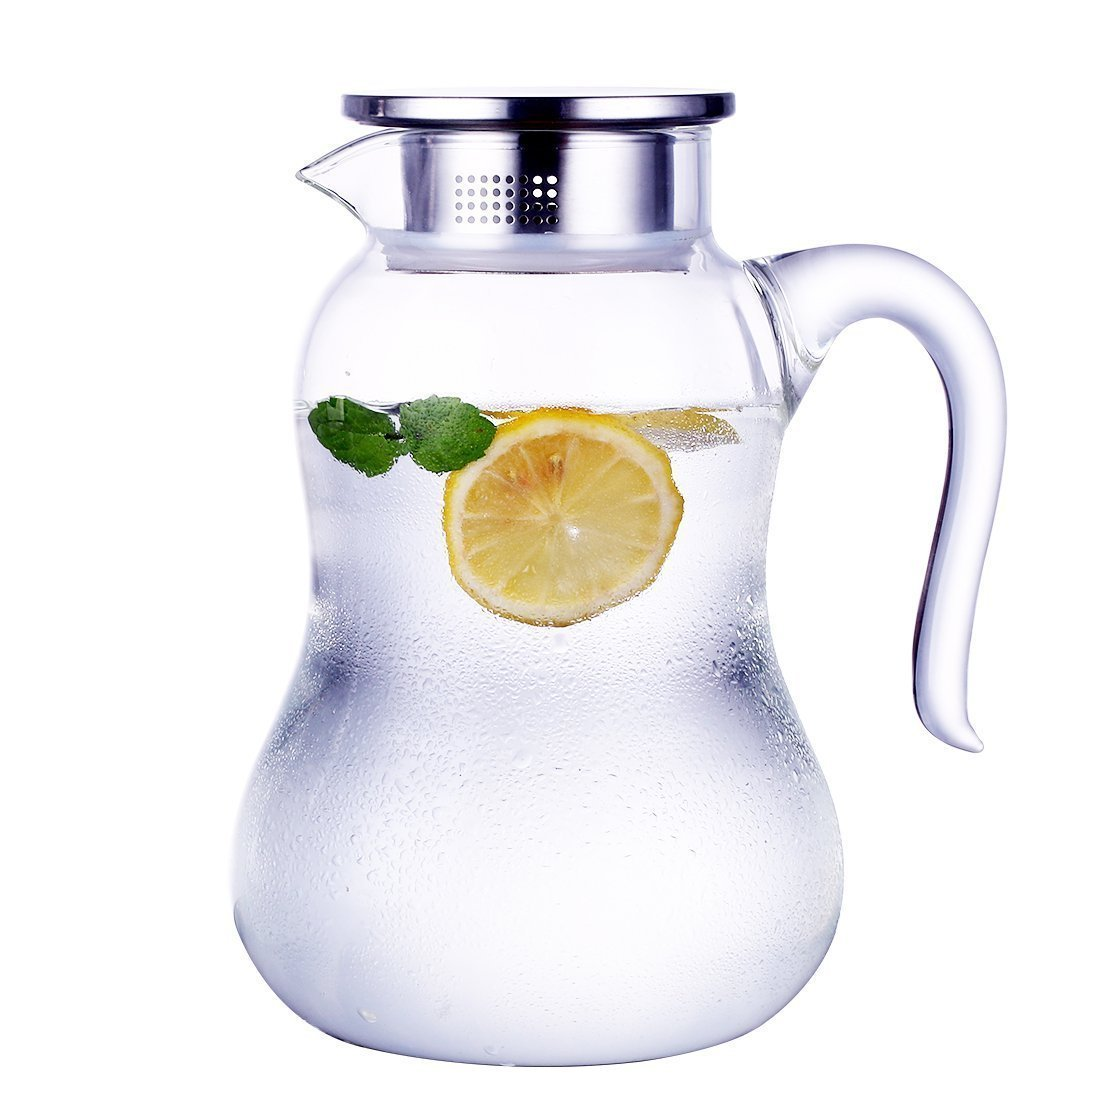 JIAQI Glass Pitcher with Stainless Steel Lid, Hot/Cold Water Jug, Juice and Iced Tea Beverage Carafe (51 Ounces)